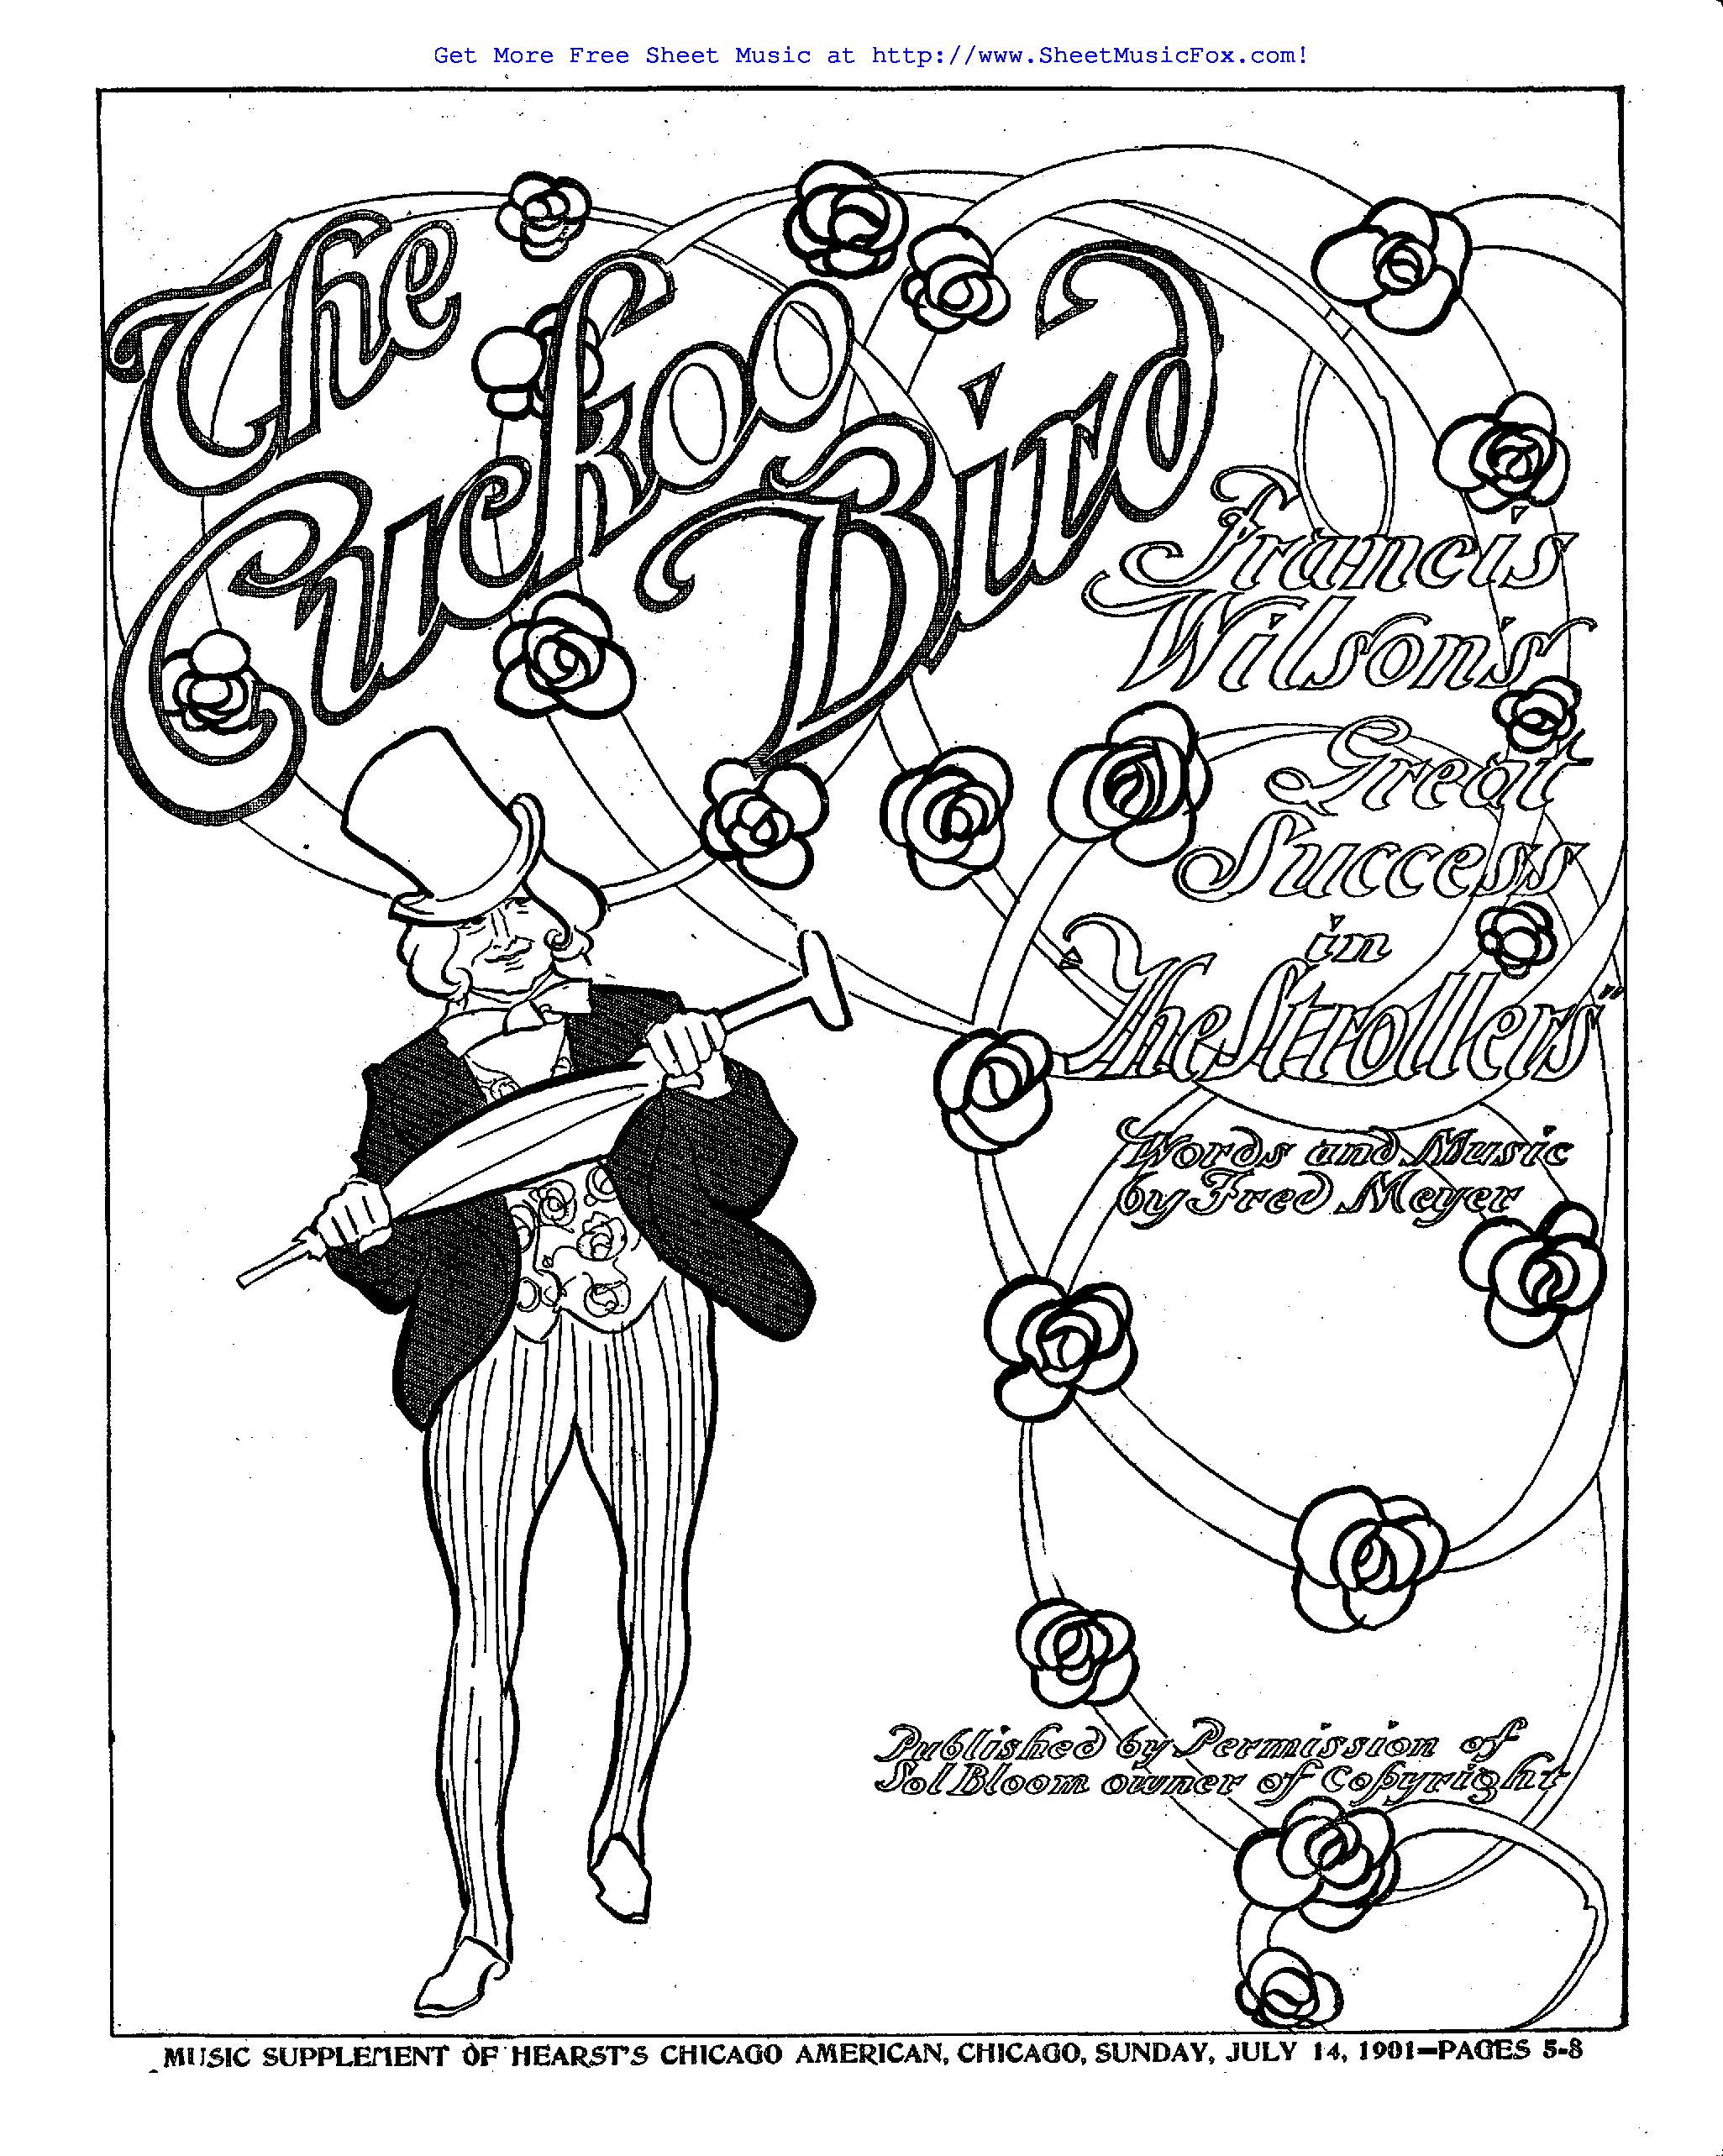 Free sheet music for The Cuckoo Bird (Meyer, Fred) by Fred